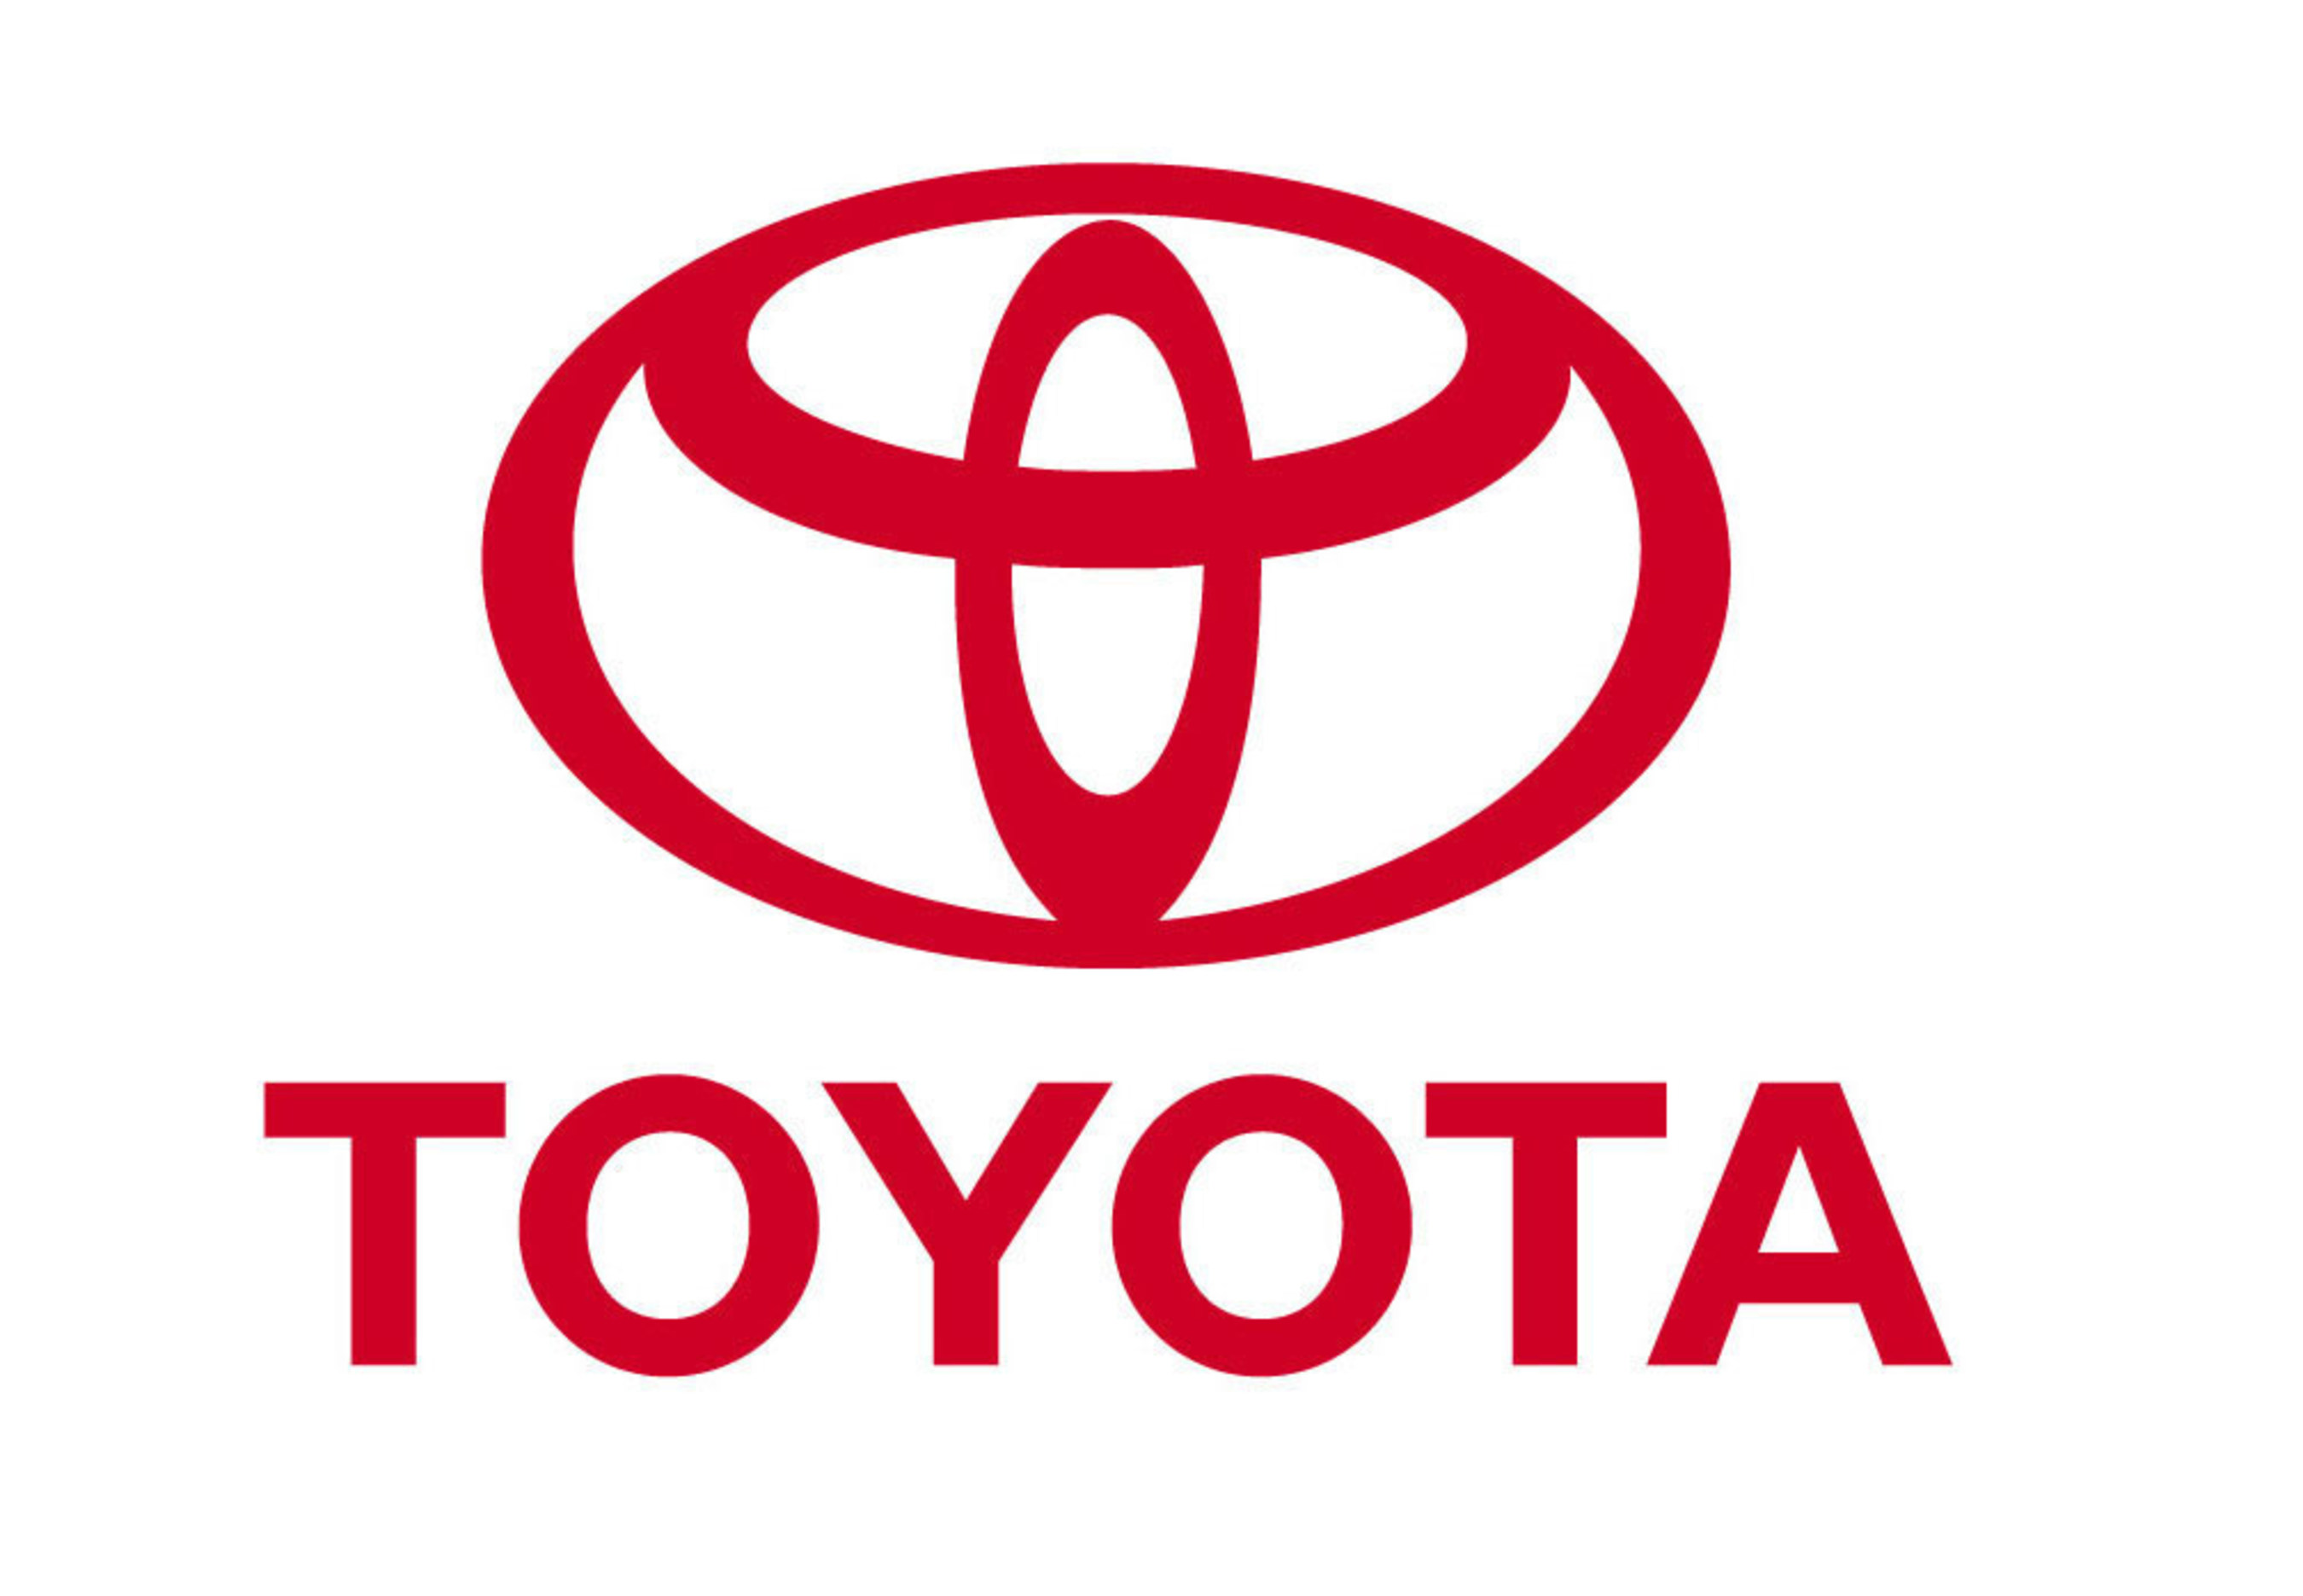 Toyota Headquarters Plano Texas >> Special Olympics Flame Of Hope Arrives At Toyota Headquarters In Plano